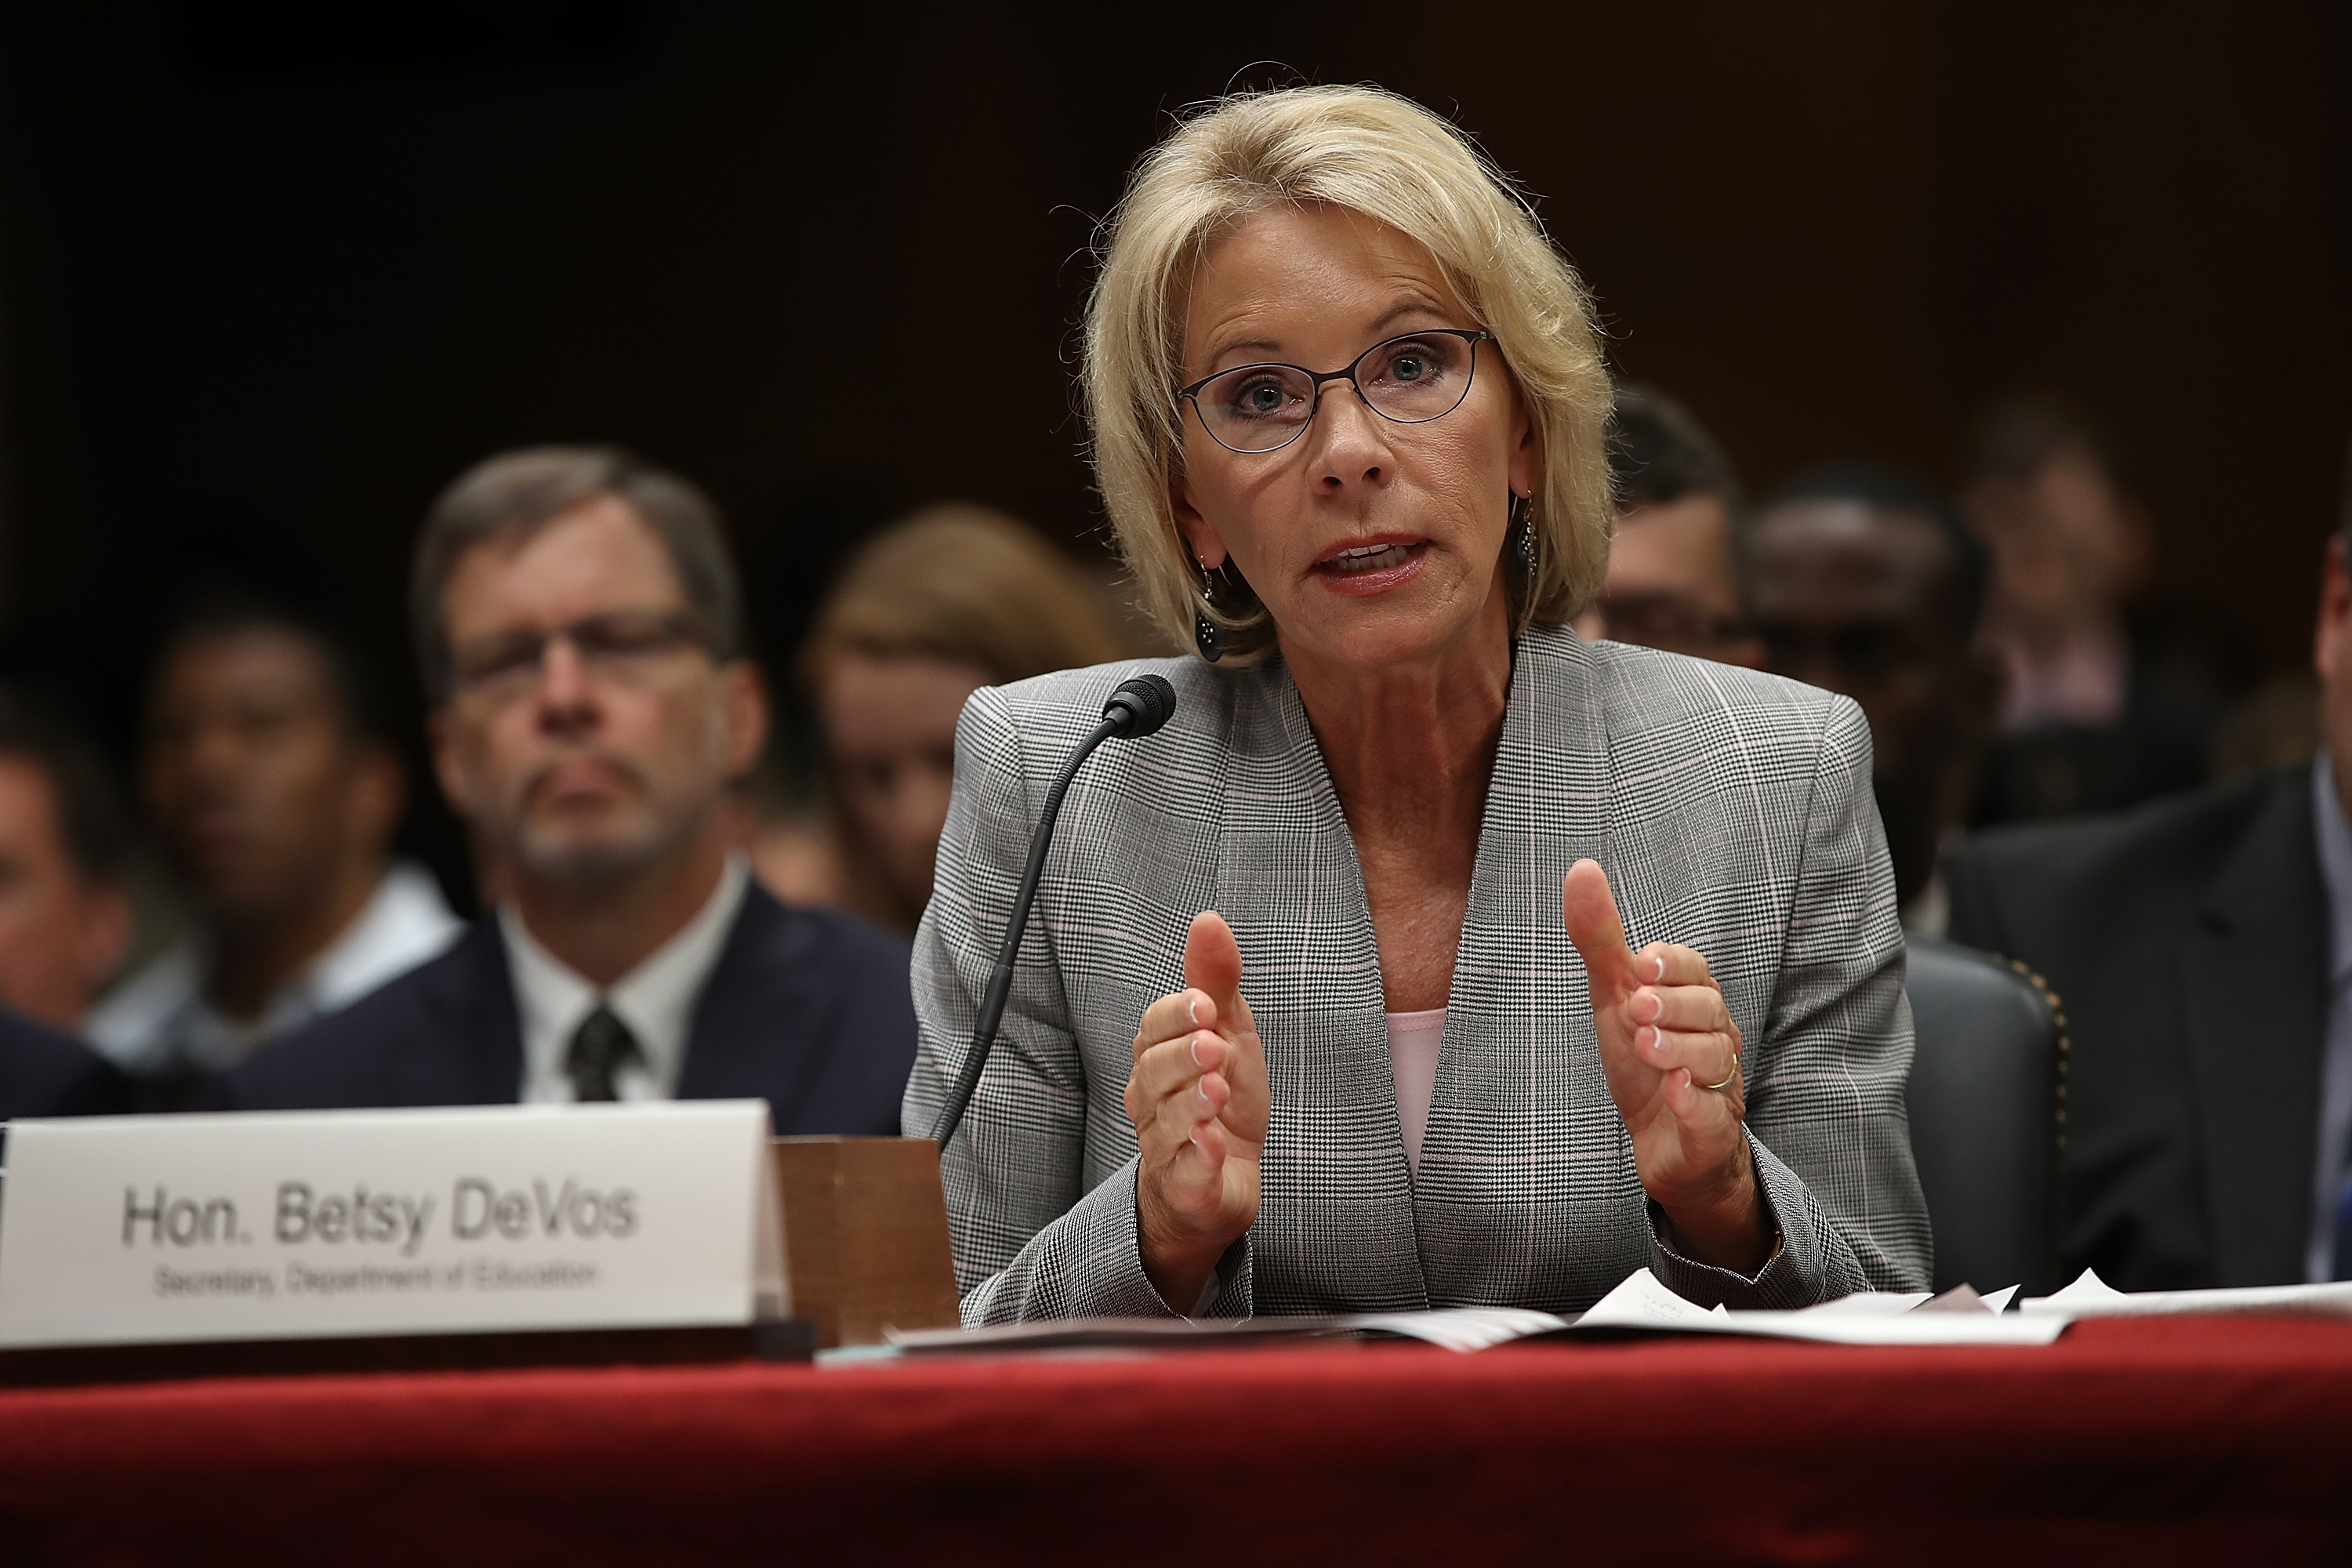 Education Secretary Betsy DeVos testifies before the Senate Appropriations Committee on Capitol Hill on June 6, 2017 in Washington, D.C.